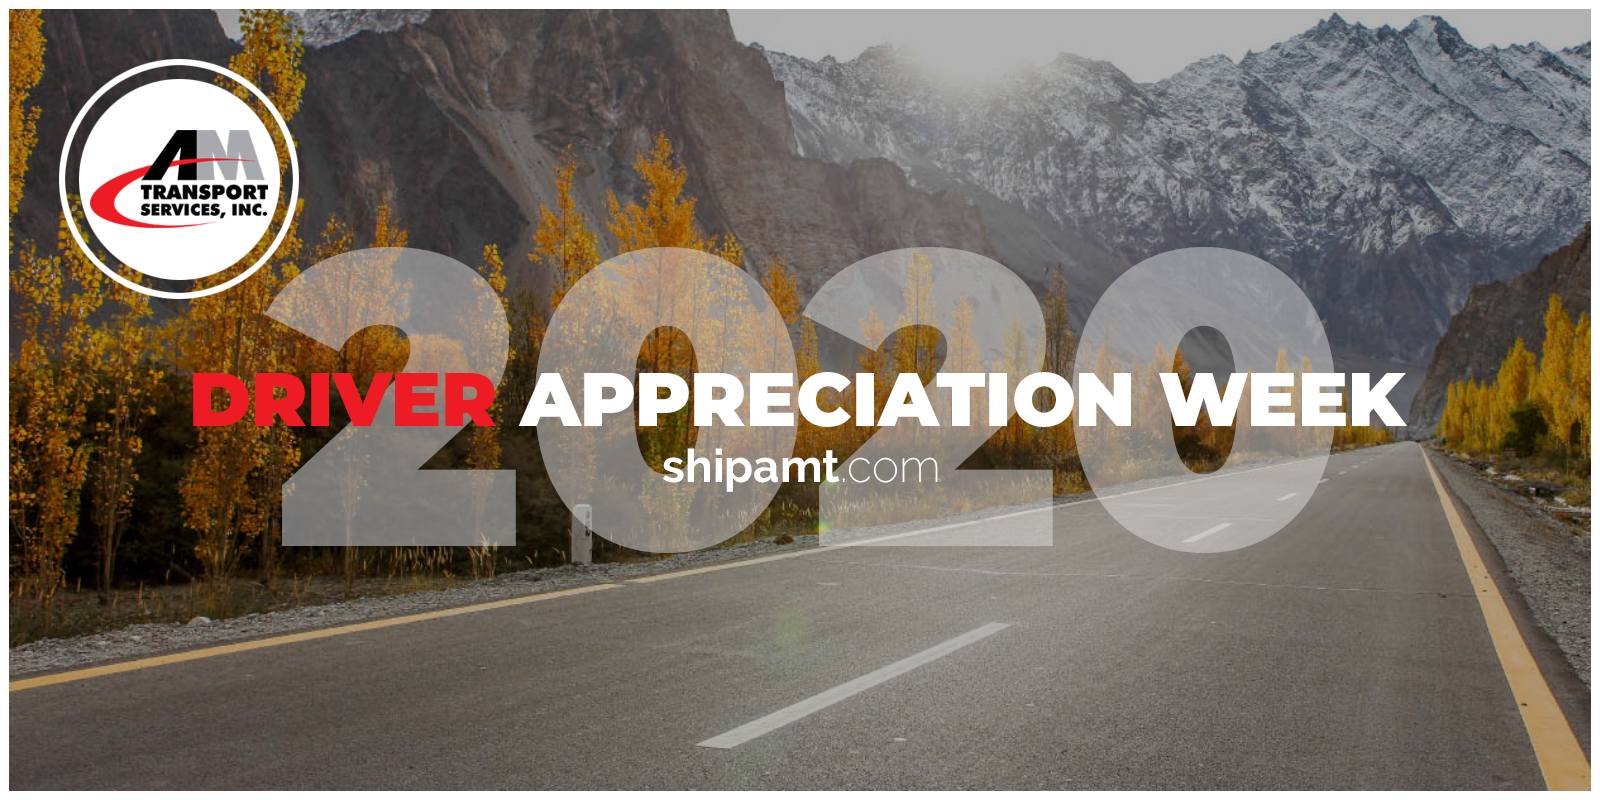 Open Road with Tagline: Driver Appreciation Week